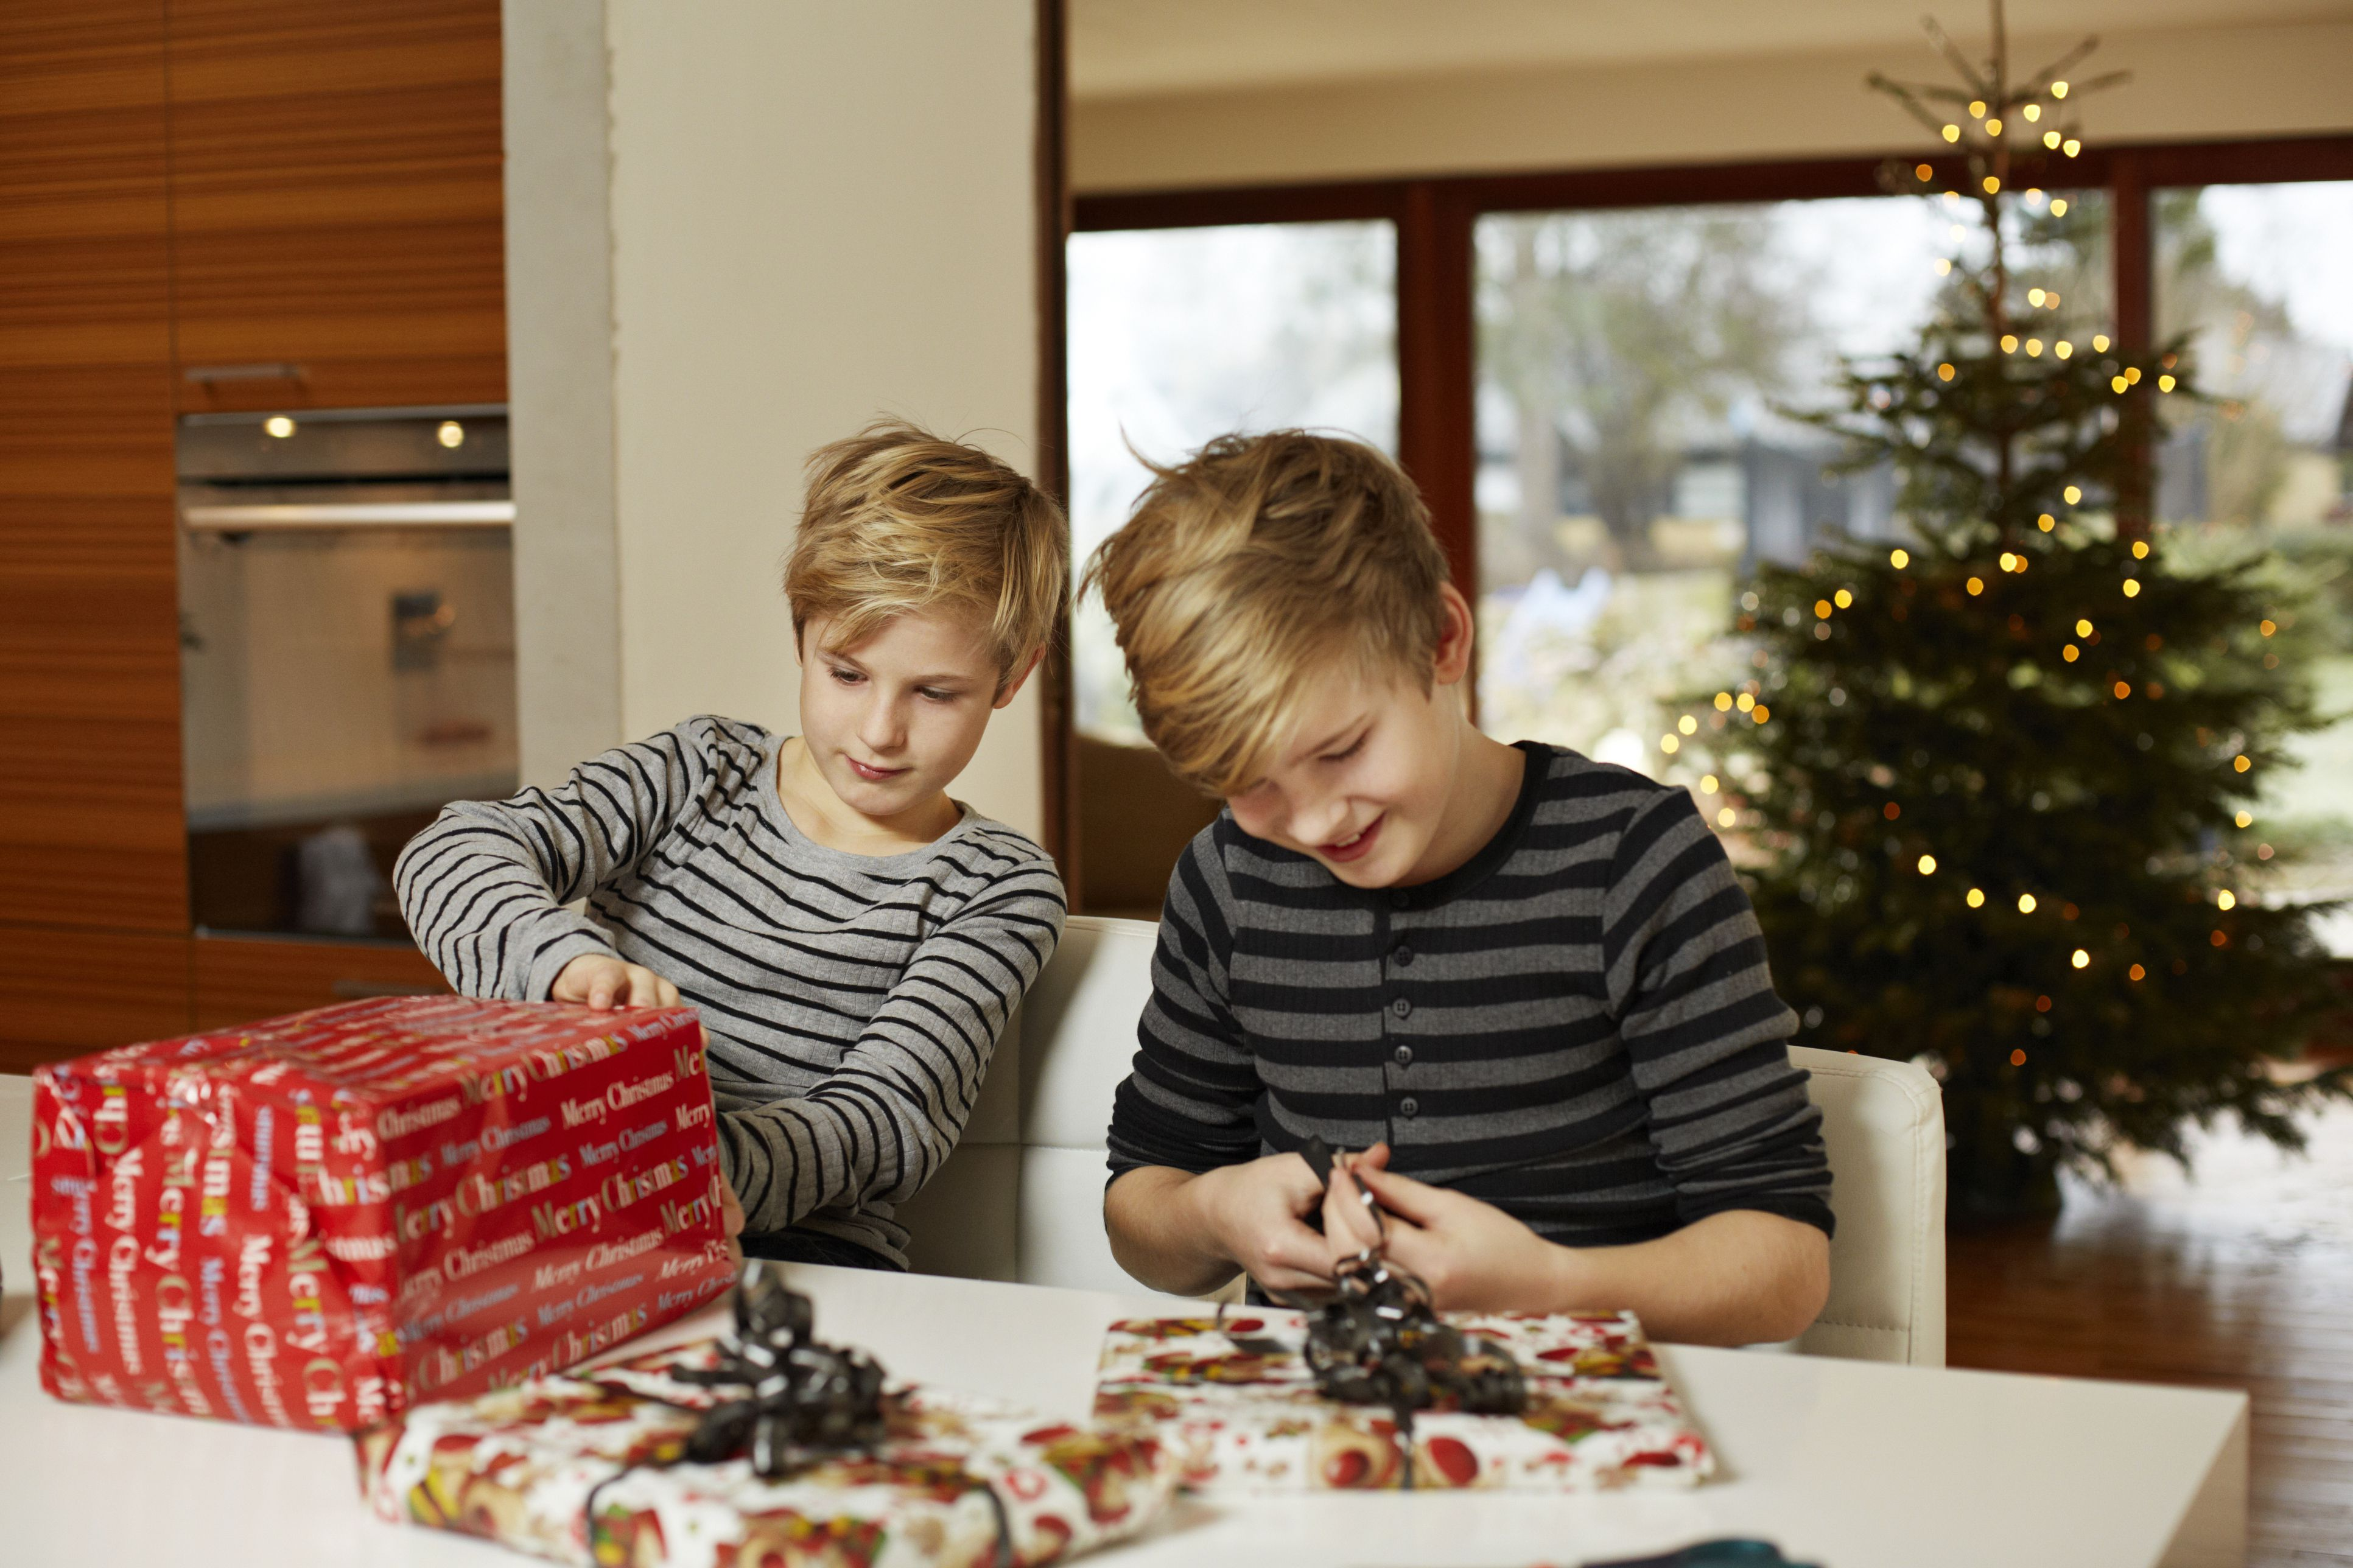 Brothers wrapping up presents for christmas